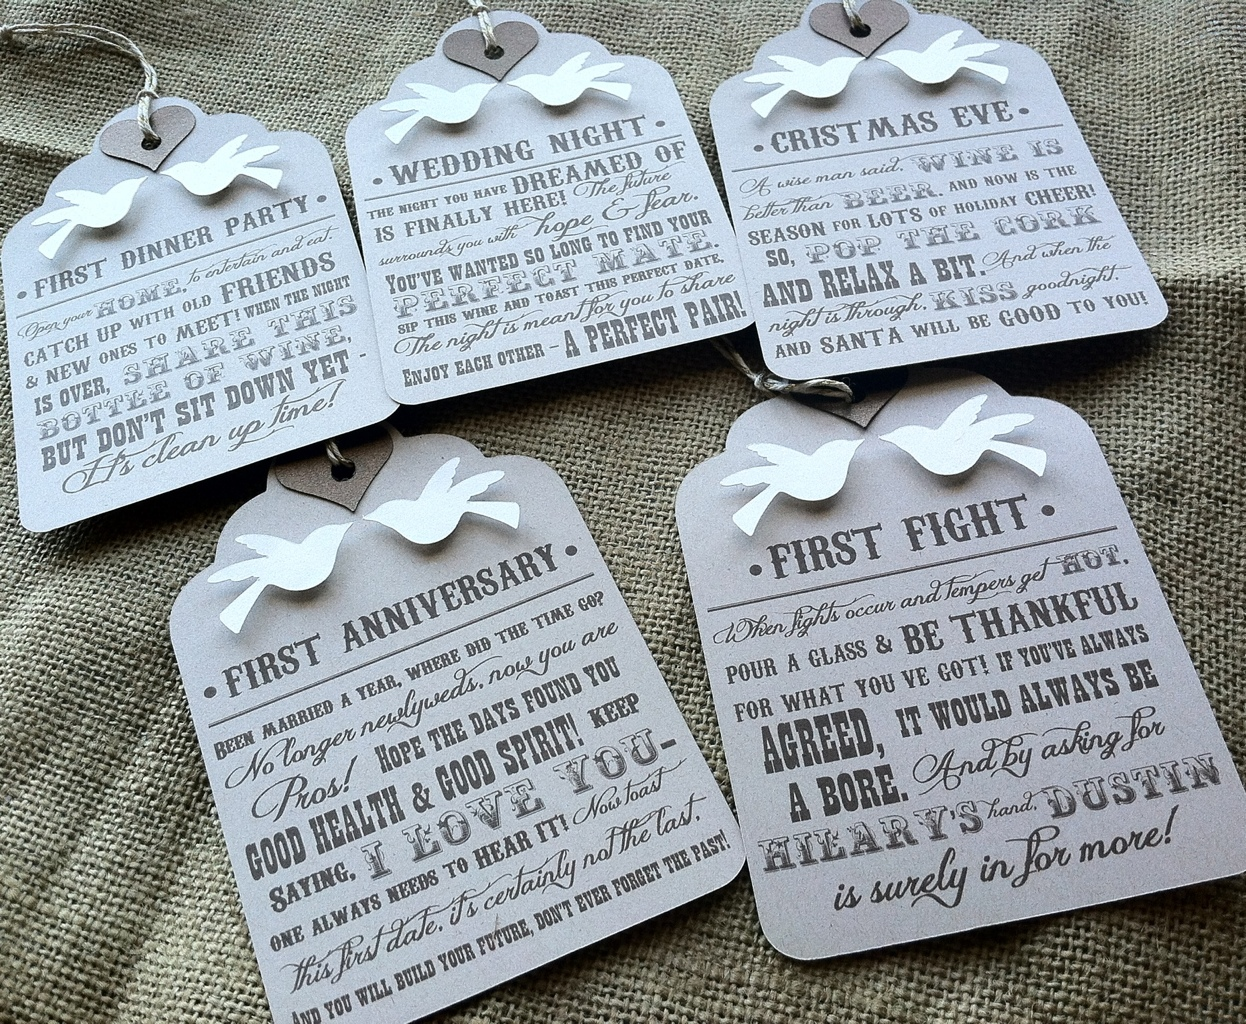 Wedding Gift Wine Tags Printable : panty poem bridal shower gift project wedding forums http www ...